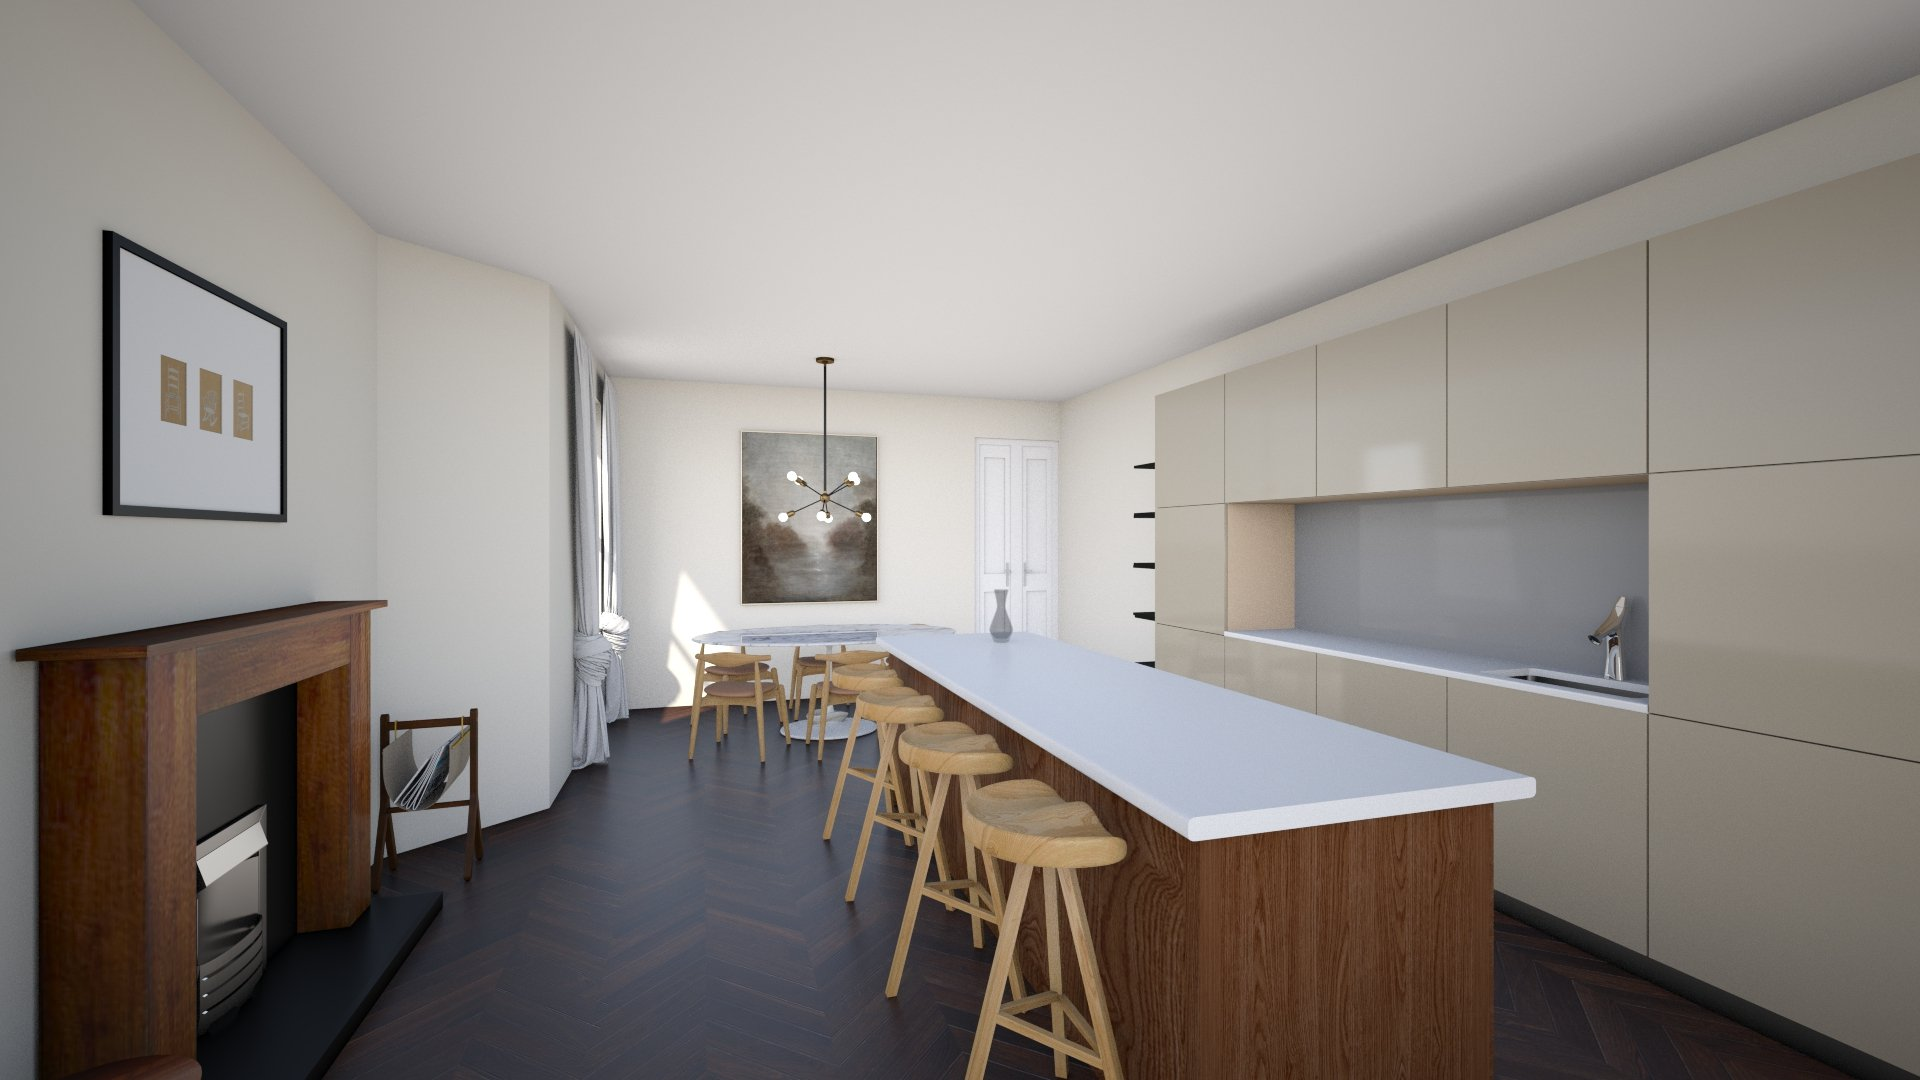 Kitchen Project Render by Studio E1